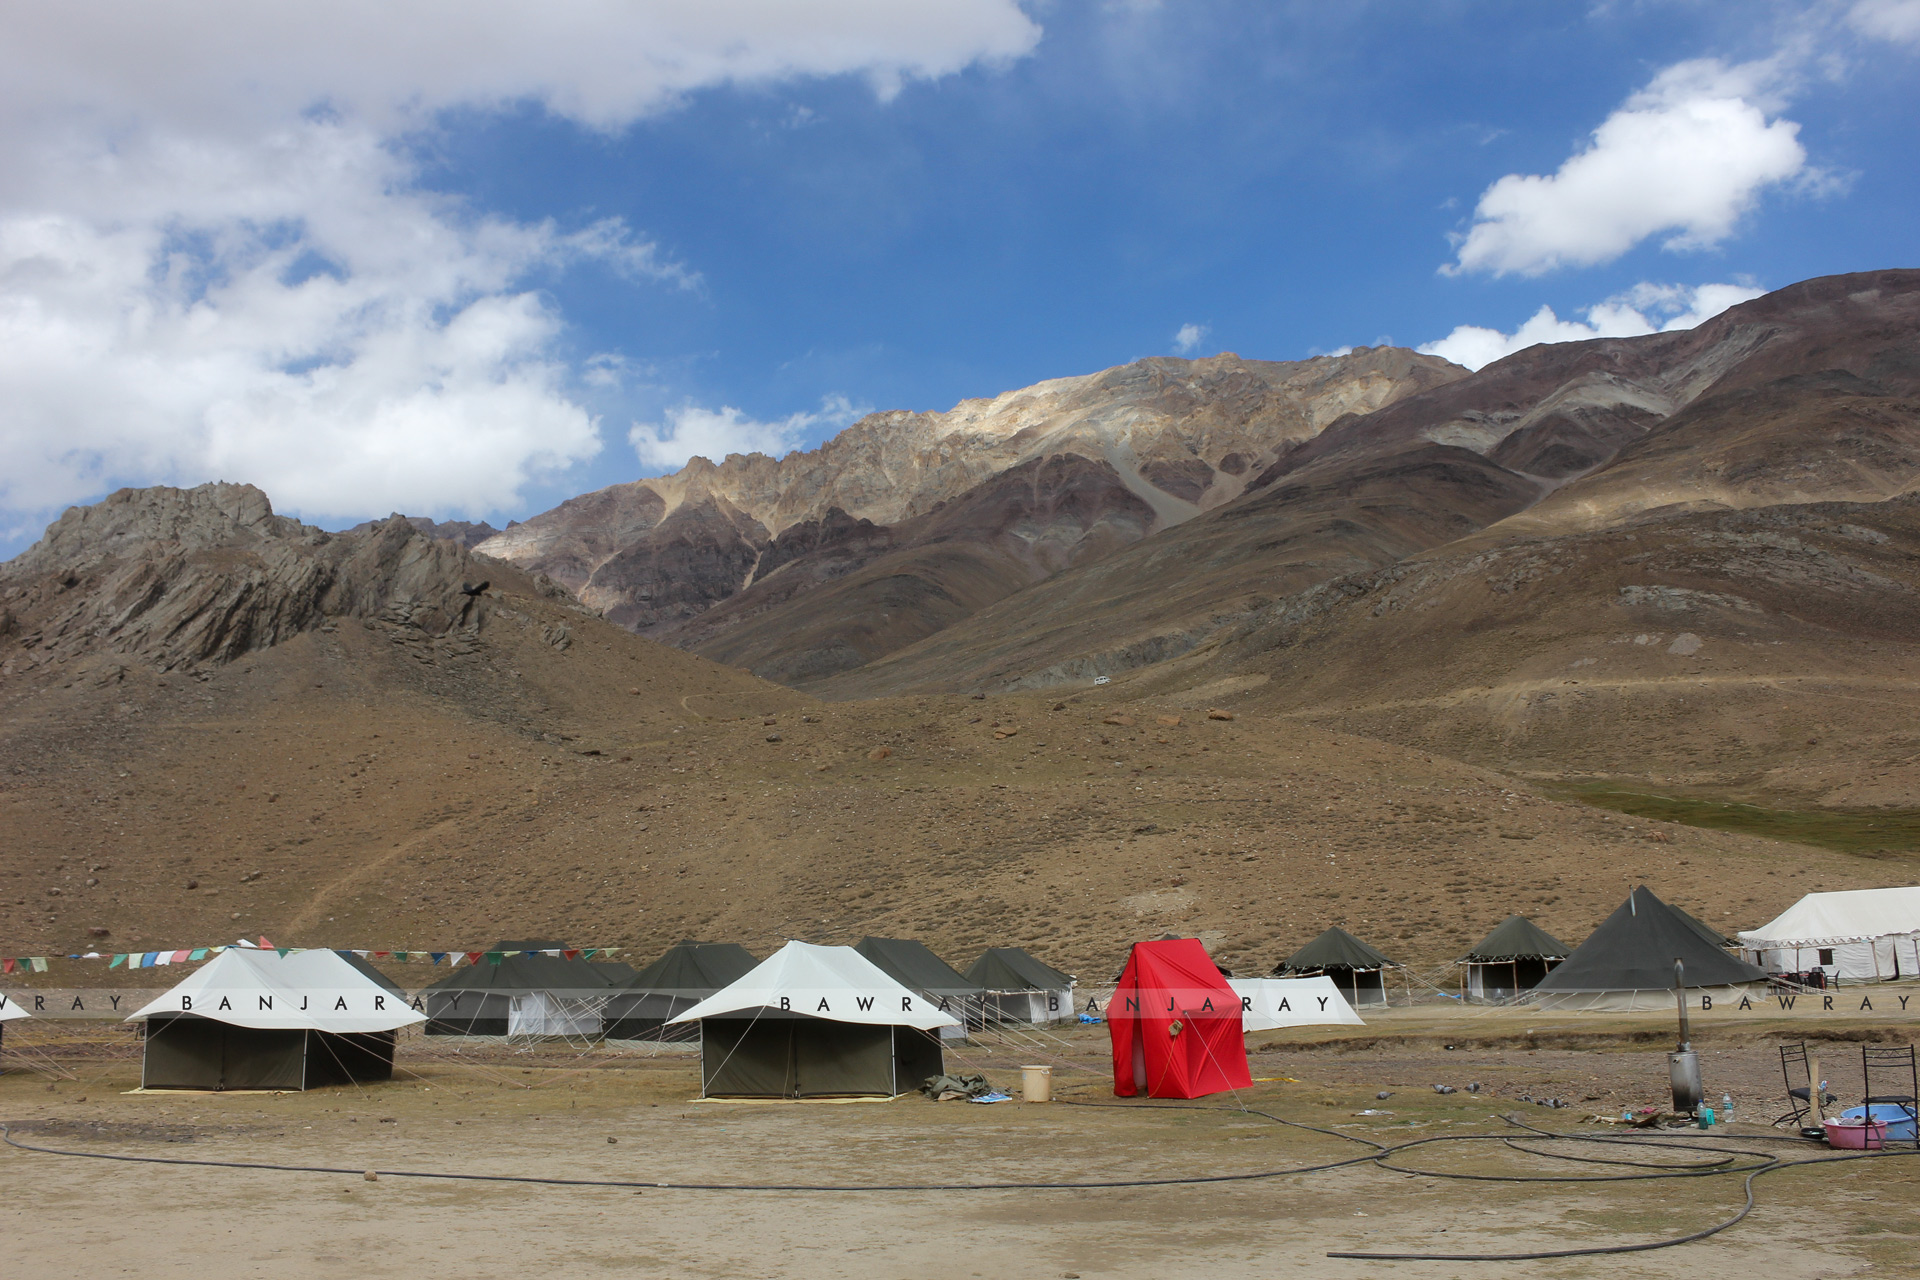 Permanent tents in Spiti are a big menace in the Indian Himalayan Region